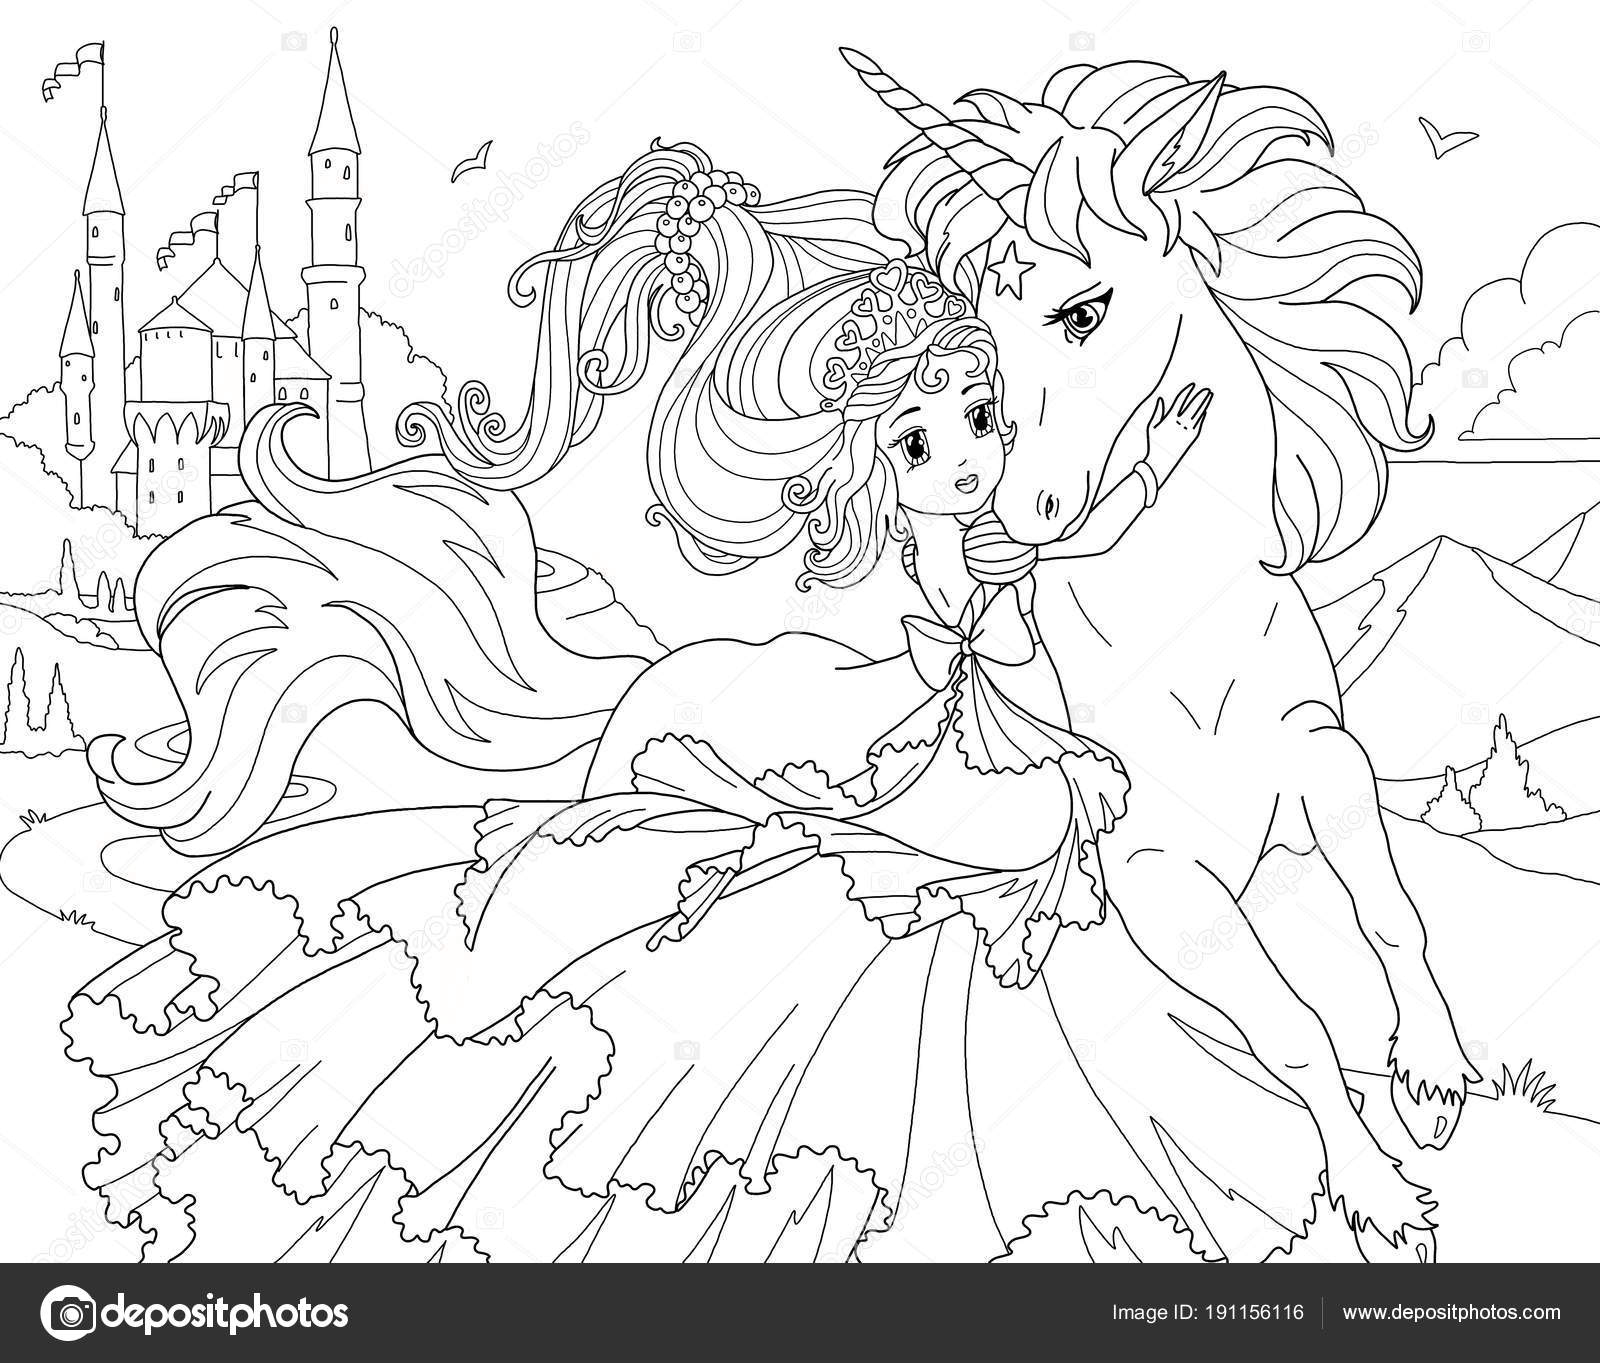 coloring pages from photos - photo#37